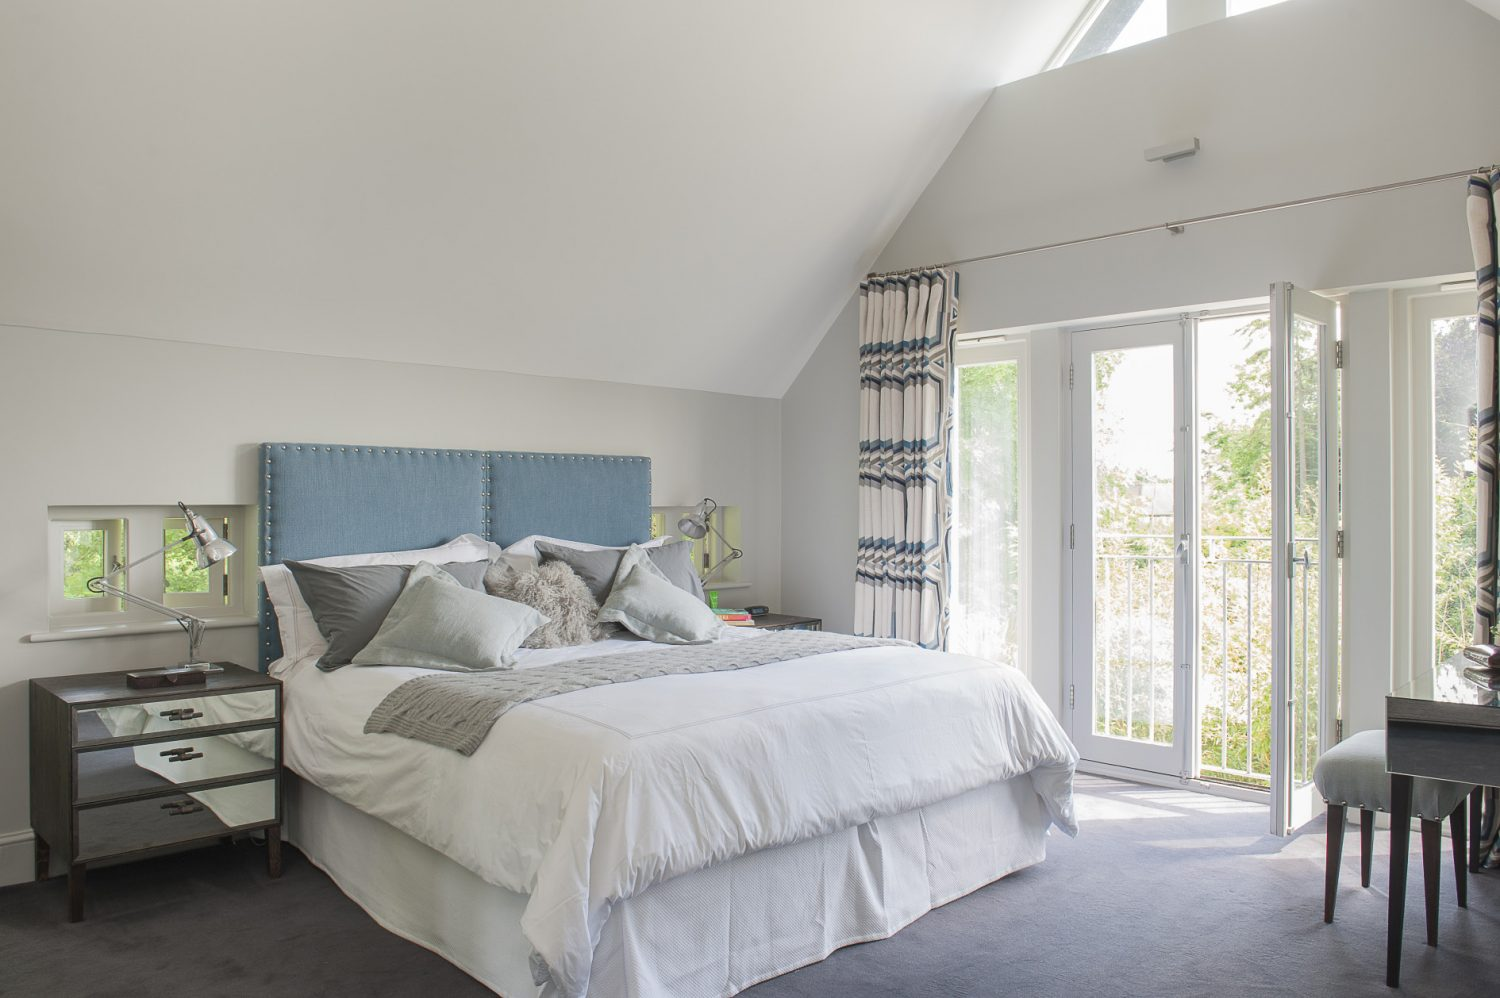 The master bedroom is flooded with light from a vaulted ceiling and French windows onto a Juliet balcony, further enhanced by Jane's choice of pale grey for the walls, bed linen and the background colour in the Larsen graphic weave fabric of the curtains. The windows on either side of the bed act like extensions of the upholstered headboard, with a pleasing symmetrical effect. The mirrored side tables, specially designed by Nathan for this room, further bounce the light around, as do the chrome bedside lamps which are original vintage Anglepoise